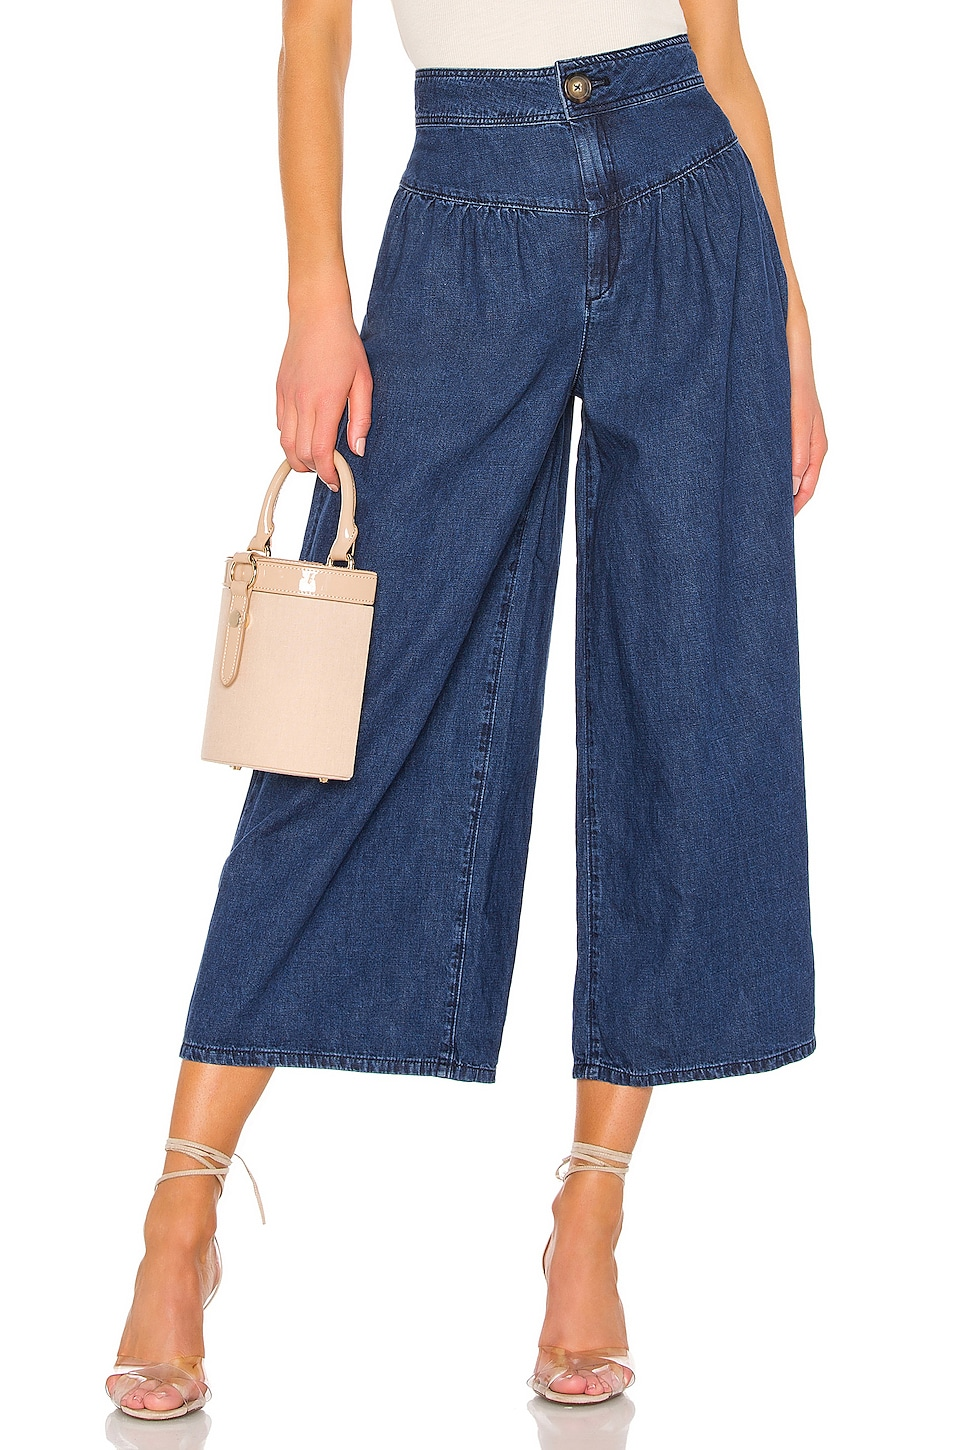 Free People La Bomba Wide Leg Jean in Dark Blue